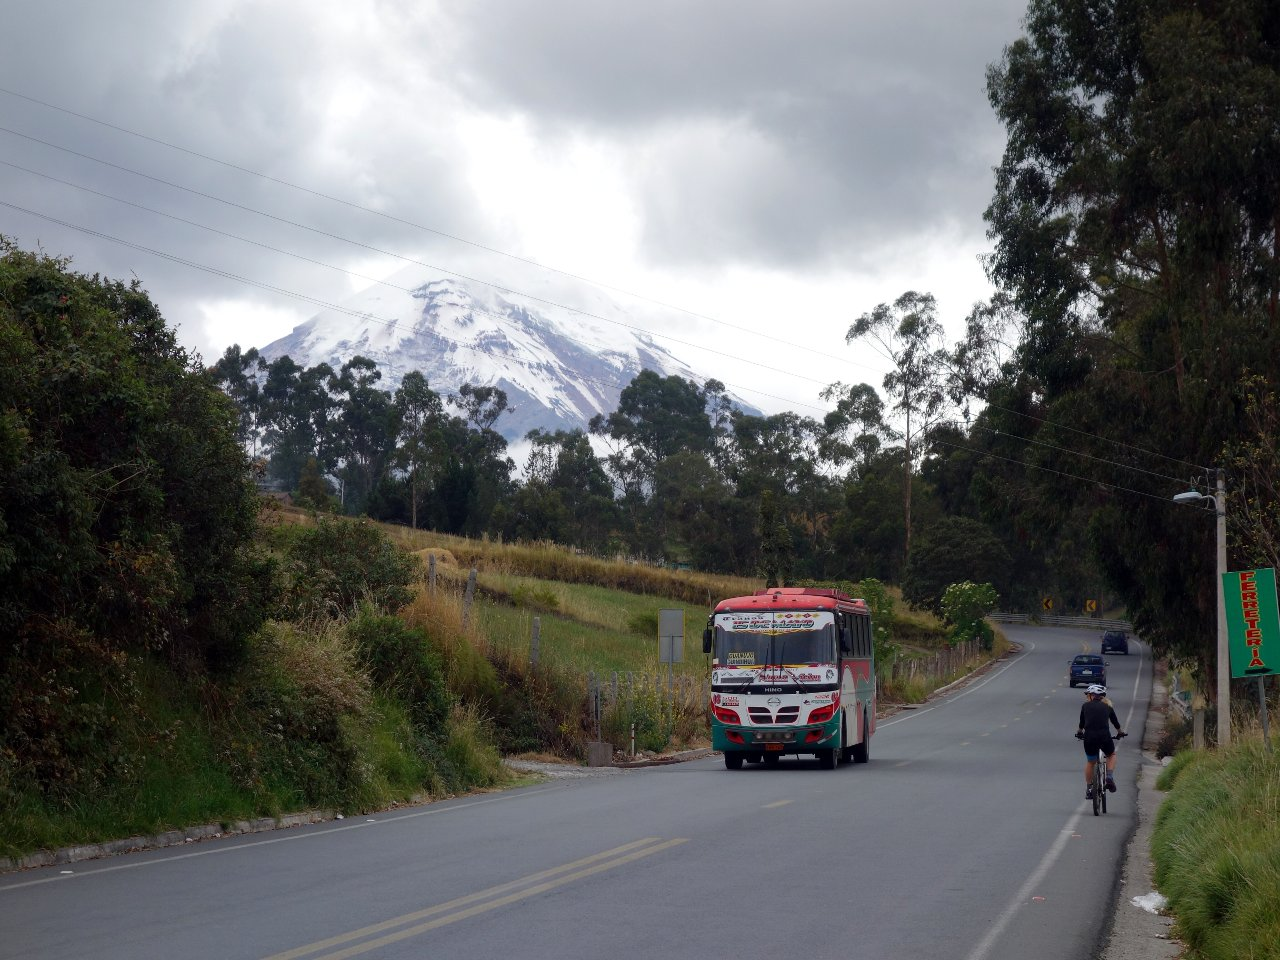 Chimborazo was in view for most of the day